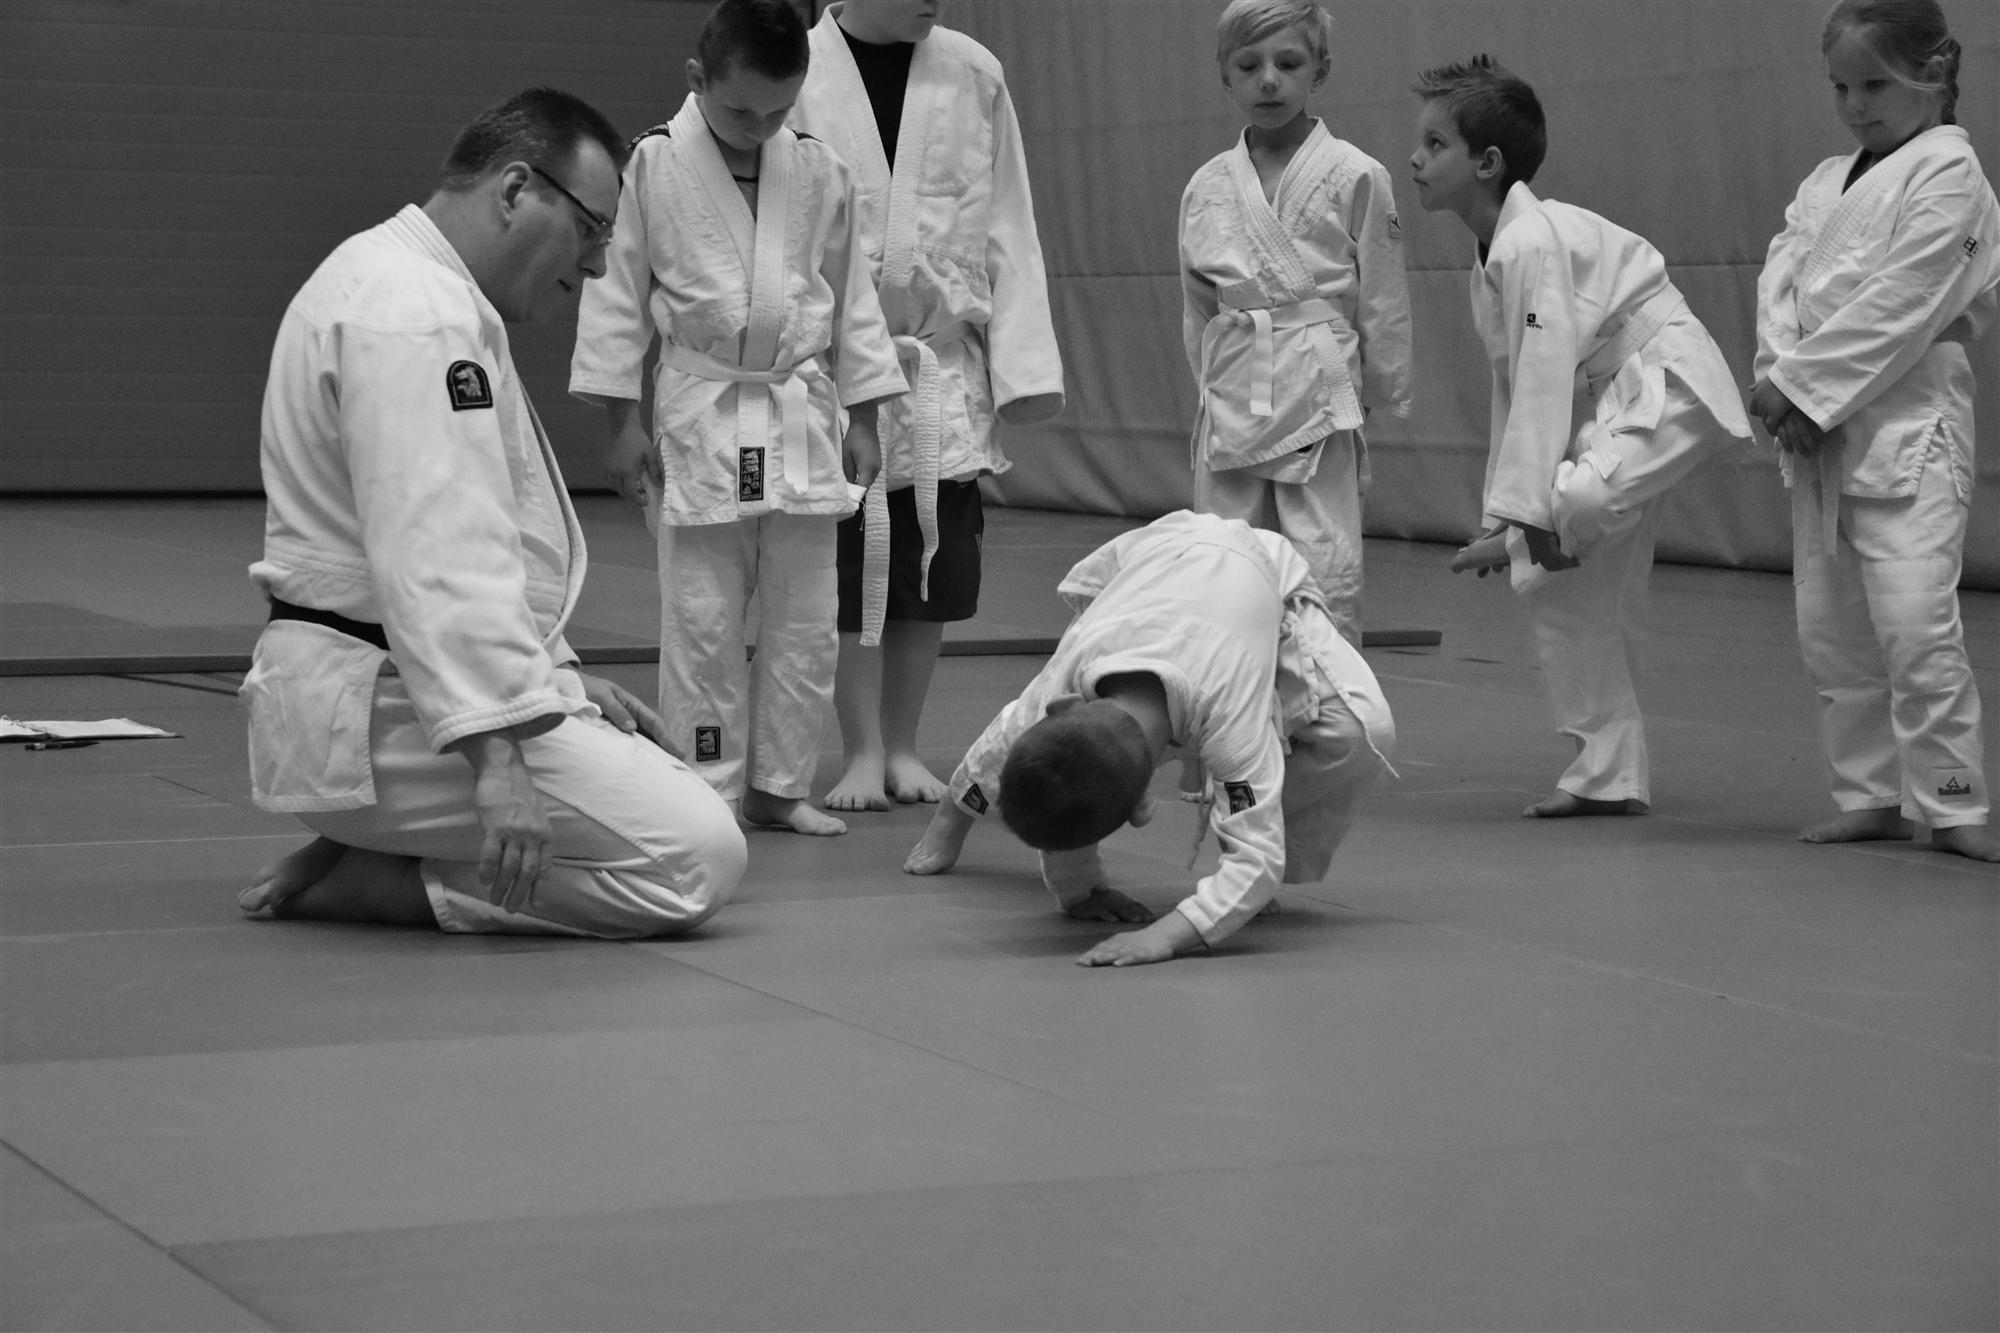 http://judoclubbrunssum.nl/iw-courses/o1/